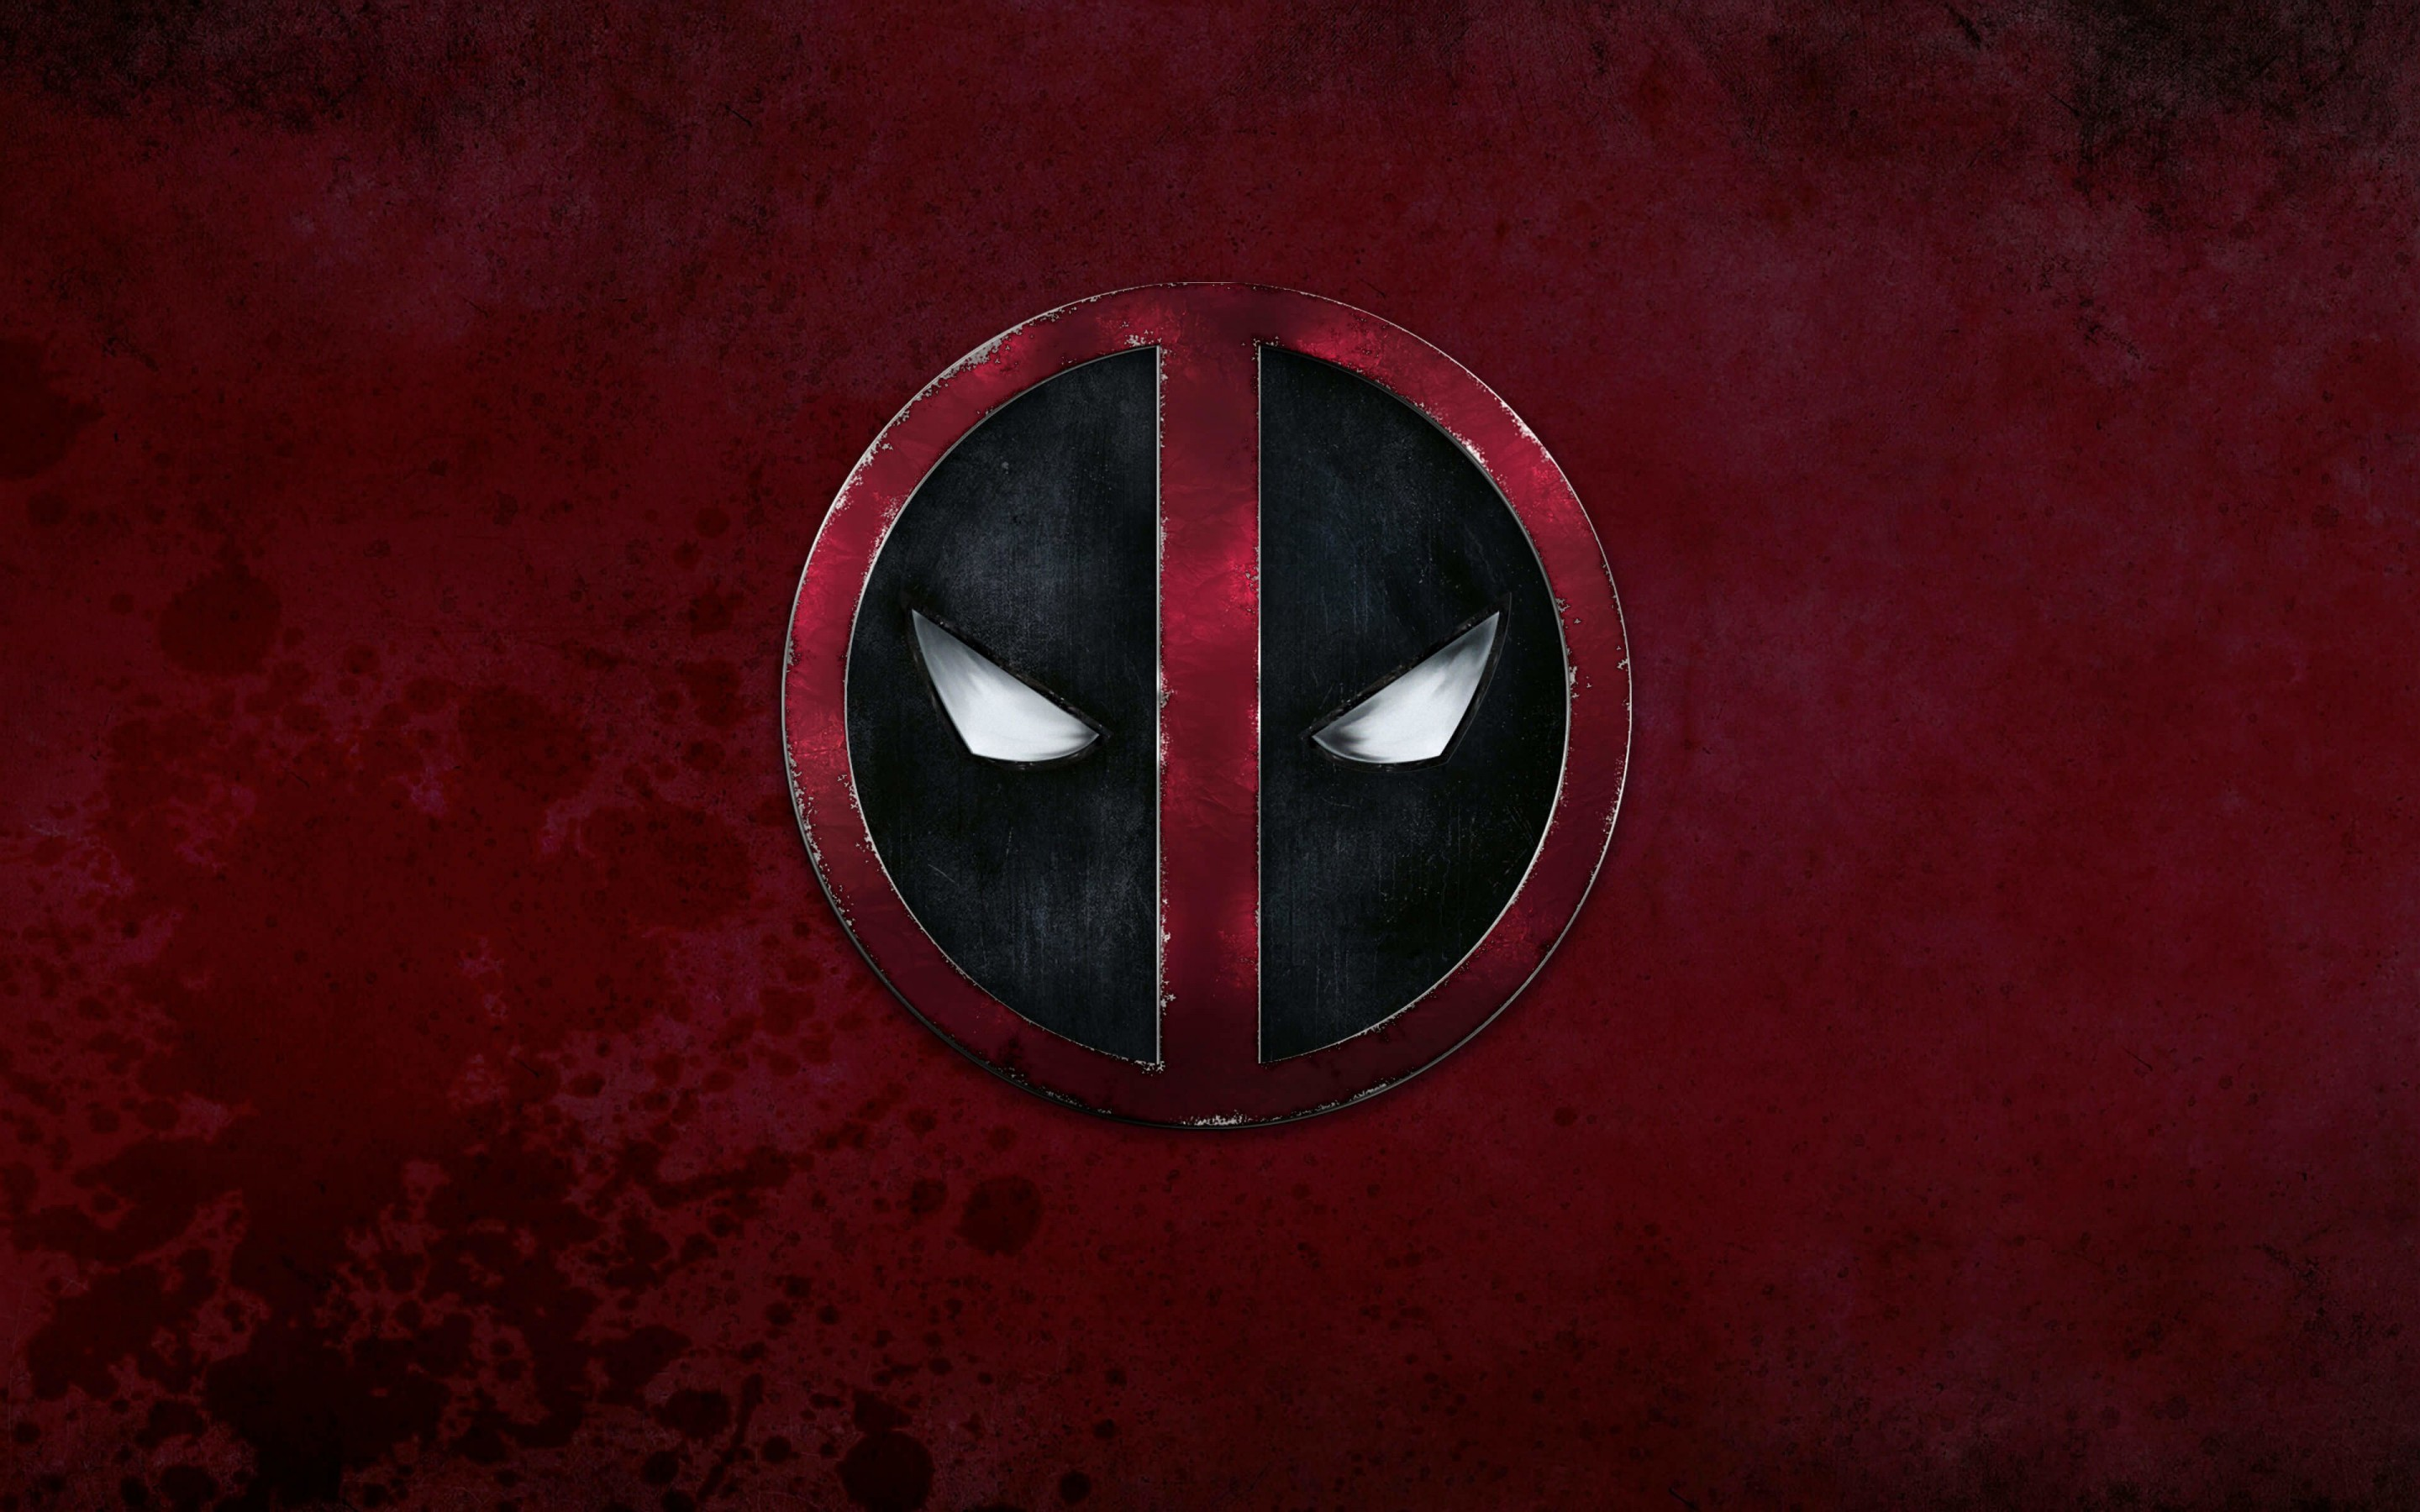 Deadpool Logo Wallpaper for Desktop 2880x1800